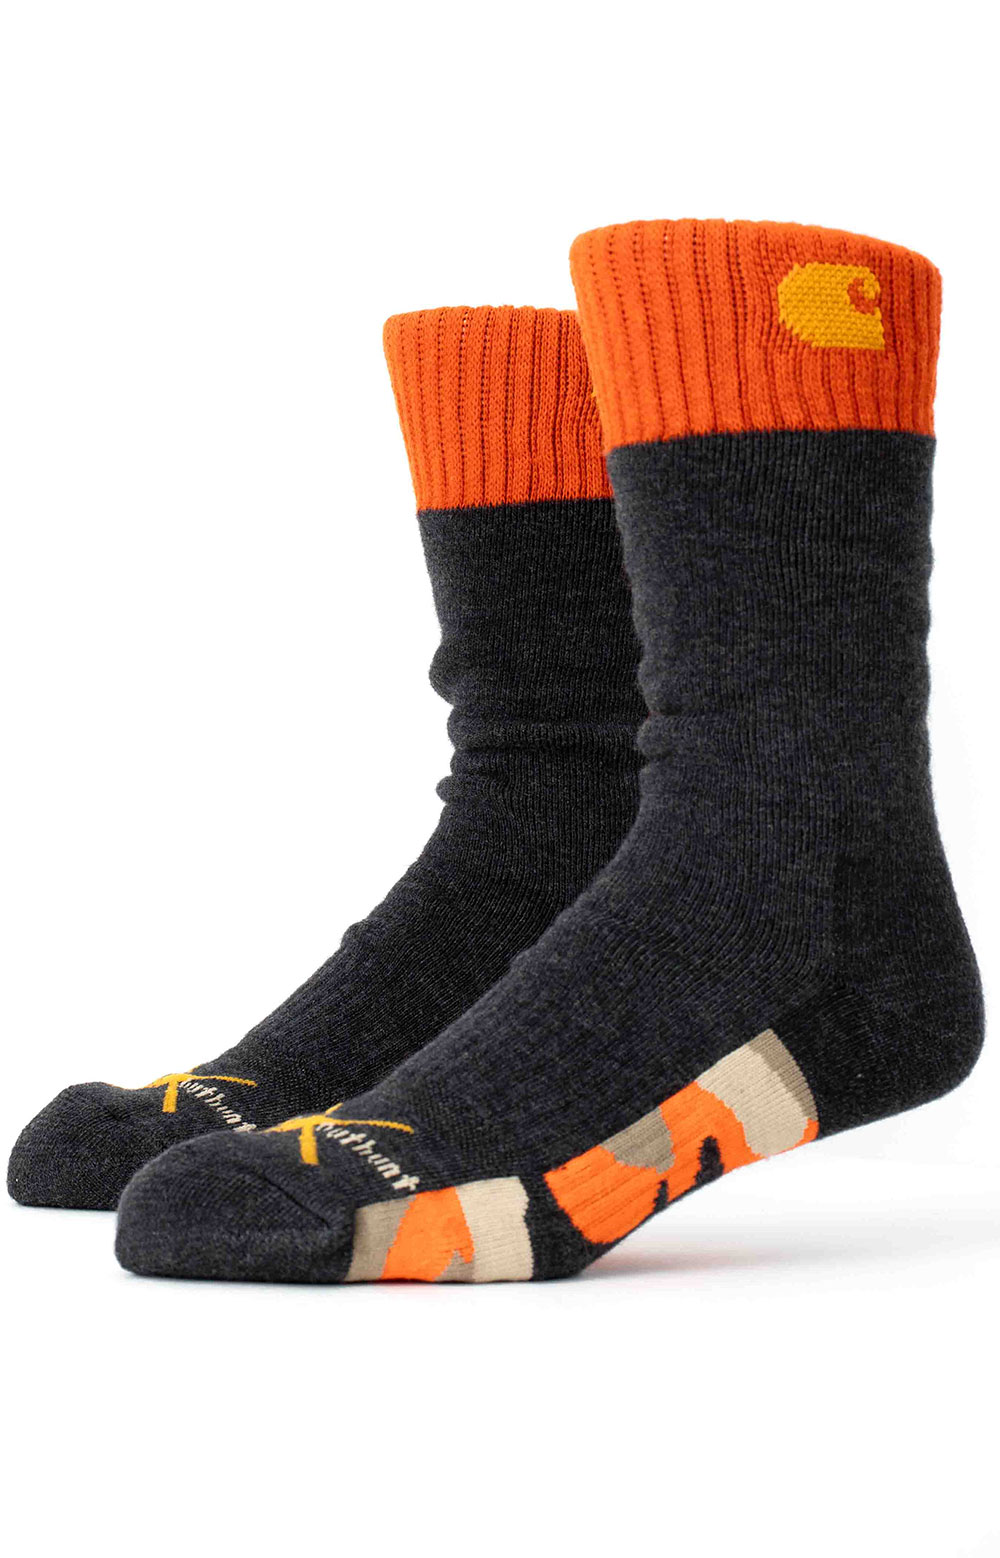 Outwork X Outhunt Crew Sock - Orange